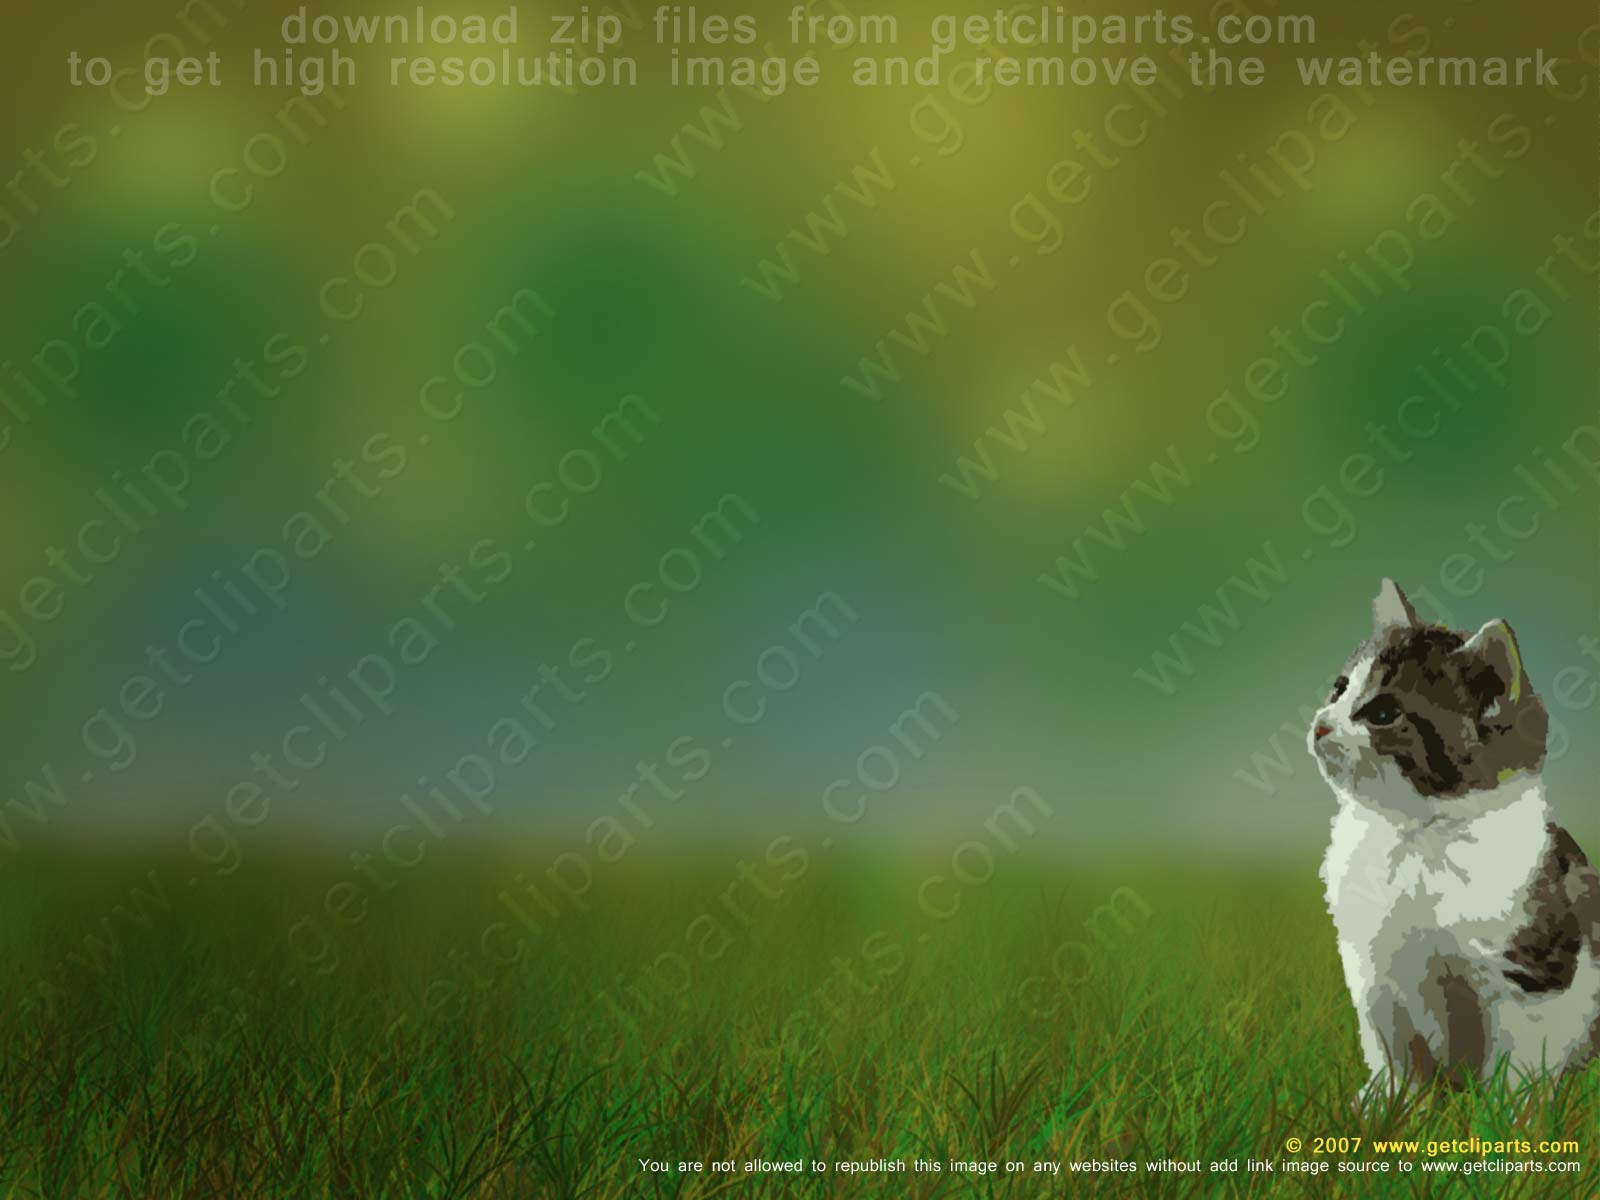 Ideal for powerpoint background. It also fit to your desktop wallpaper at